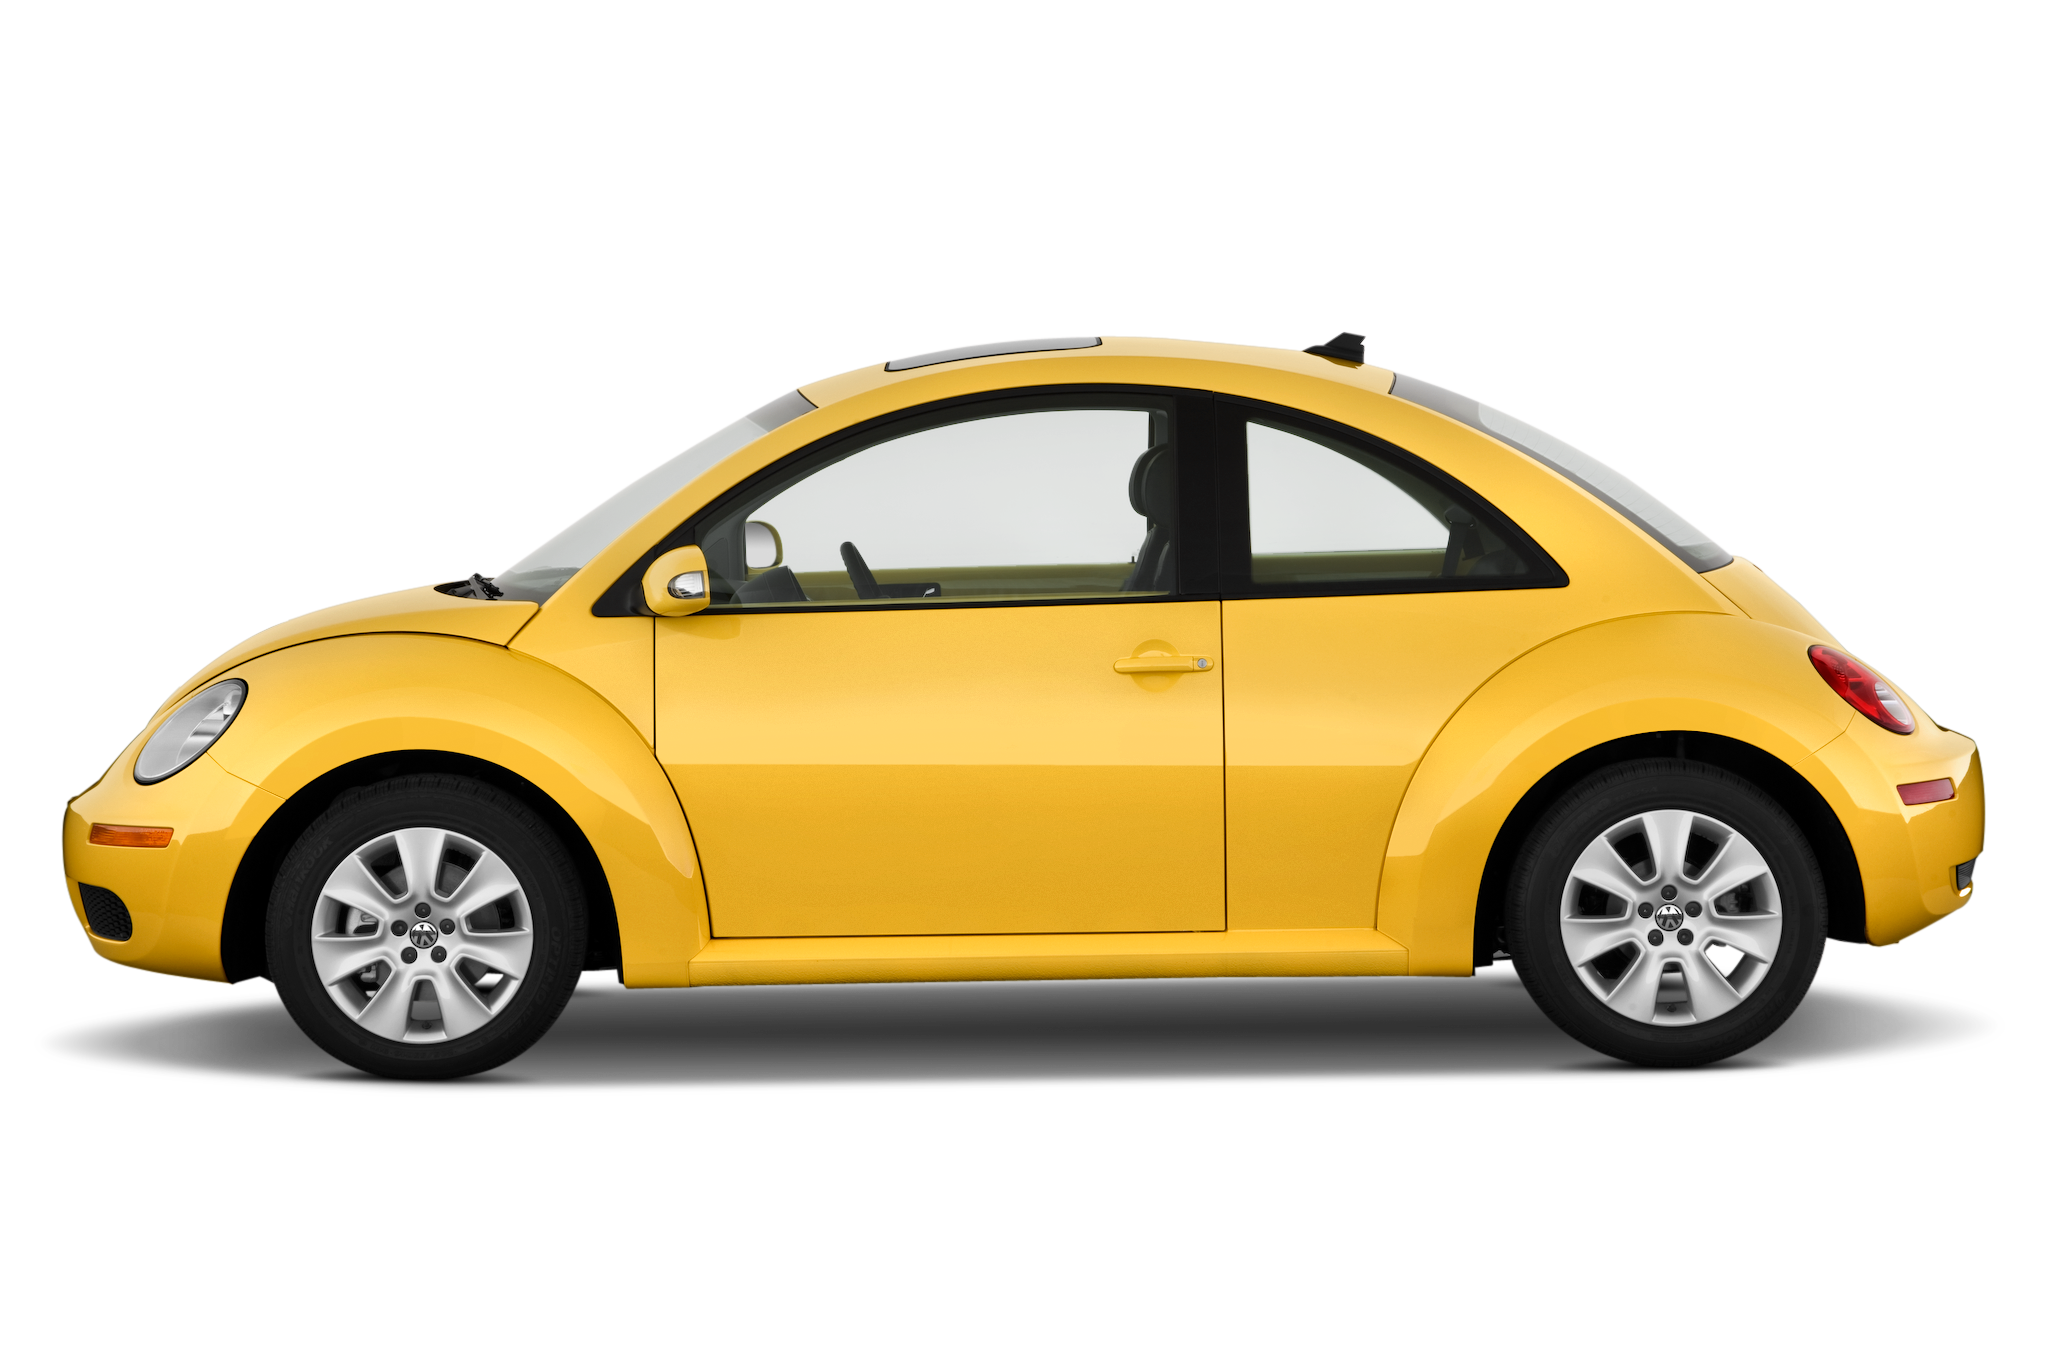 Buggy car clipart png royalty free First Look: 2010 Volkswagen New Beetle Final Edition - 2009 LA Auto ... png royalty free